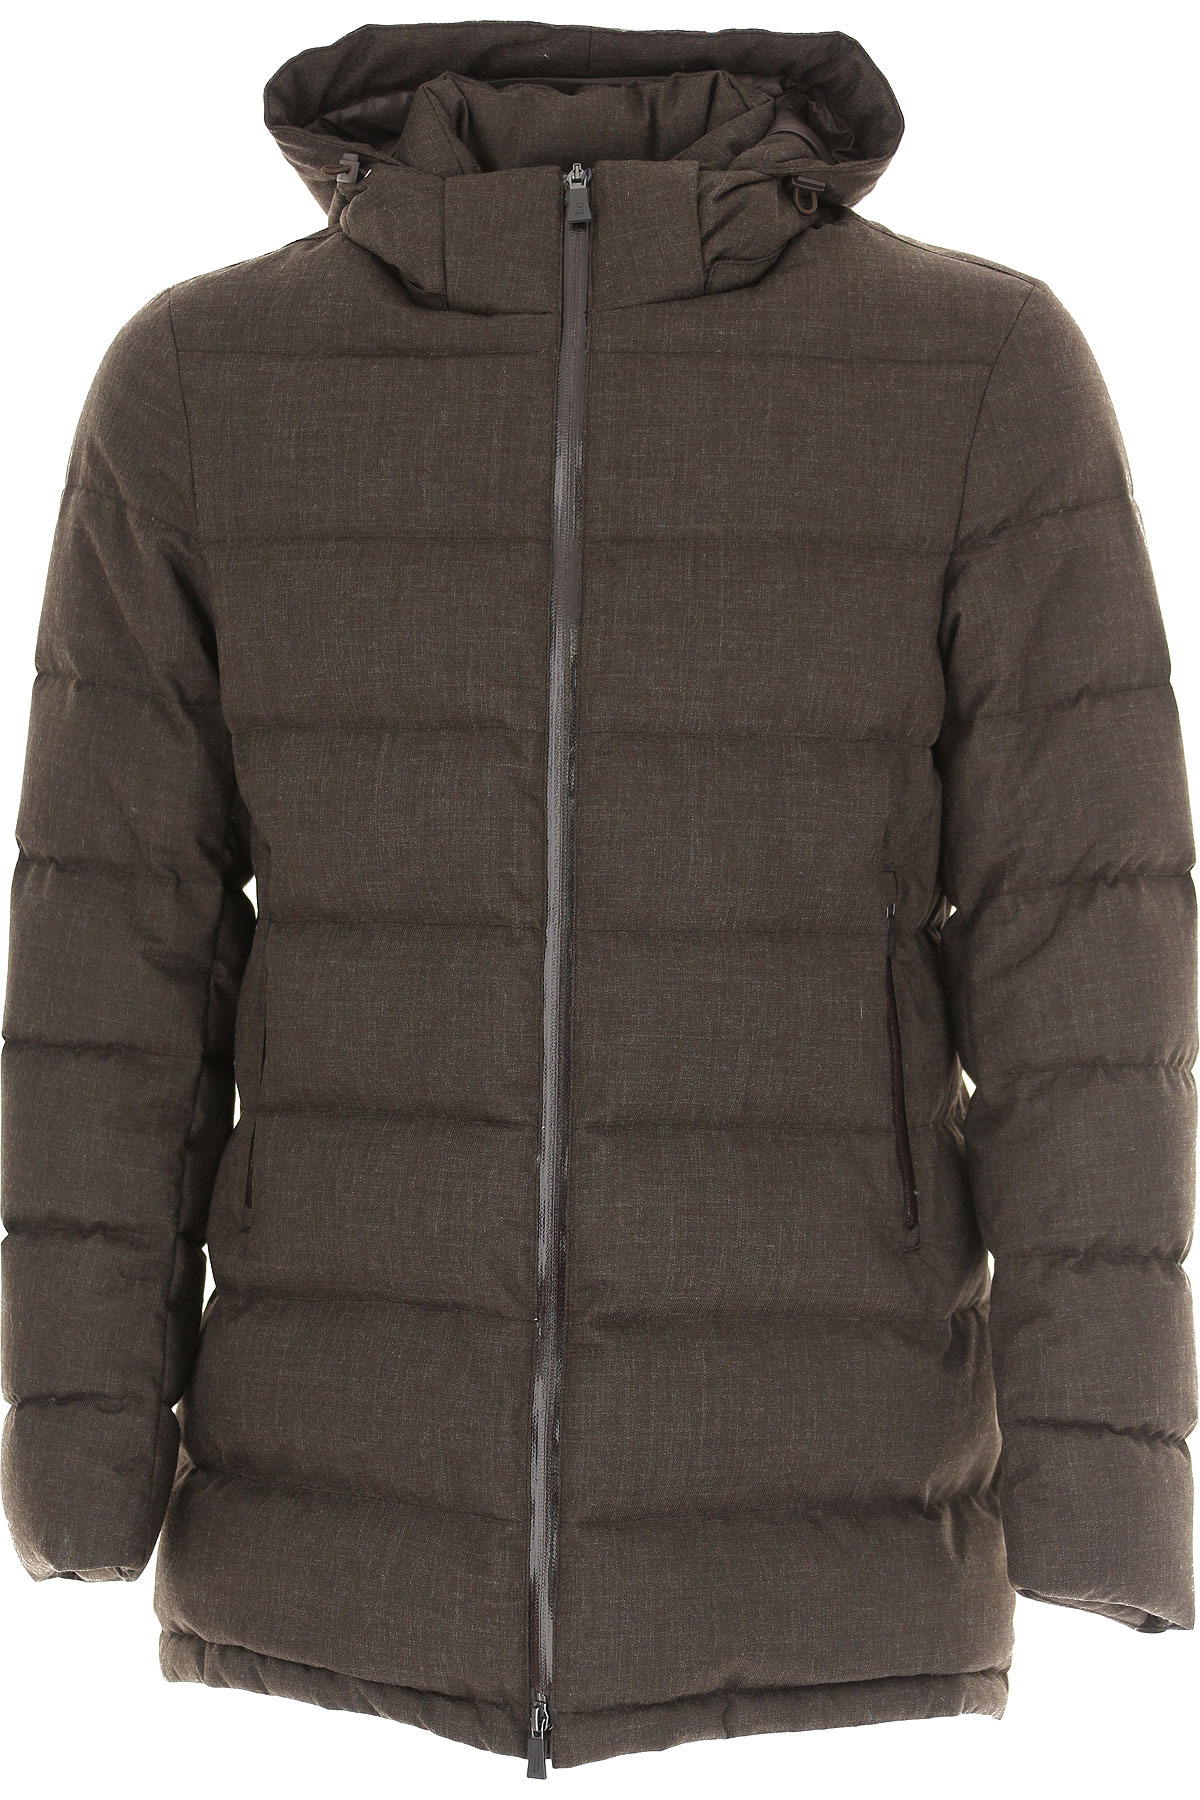 Herno Down Jacket for Men, Puffer Ski Jacket On Sale, Cacao, polyester, 2019, M XXL